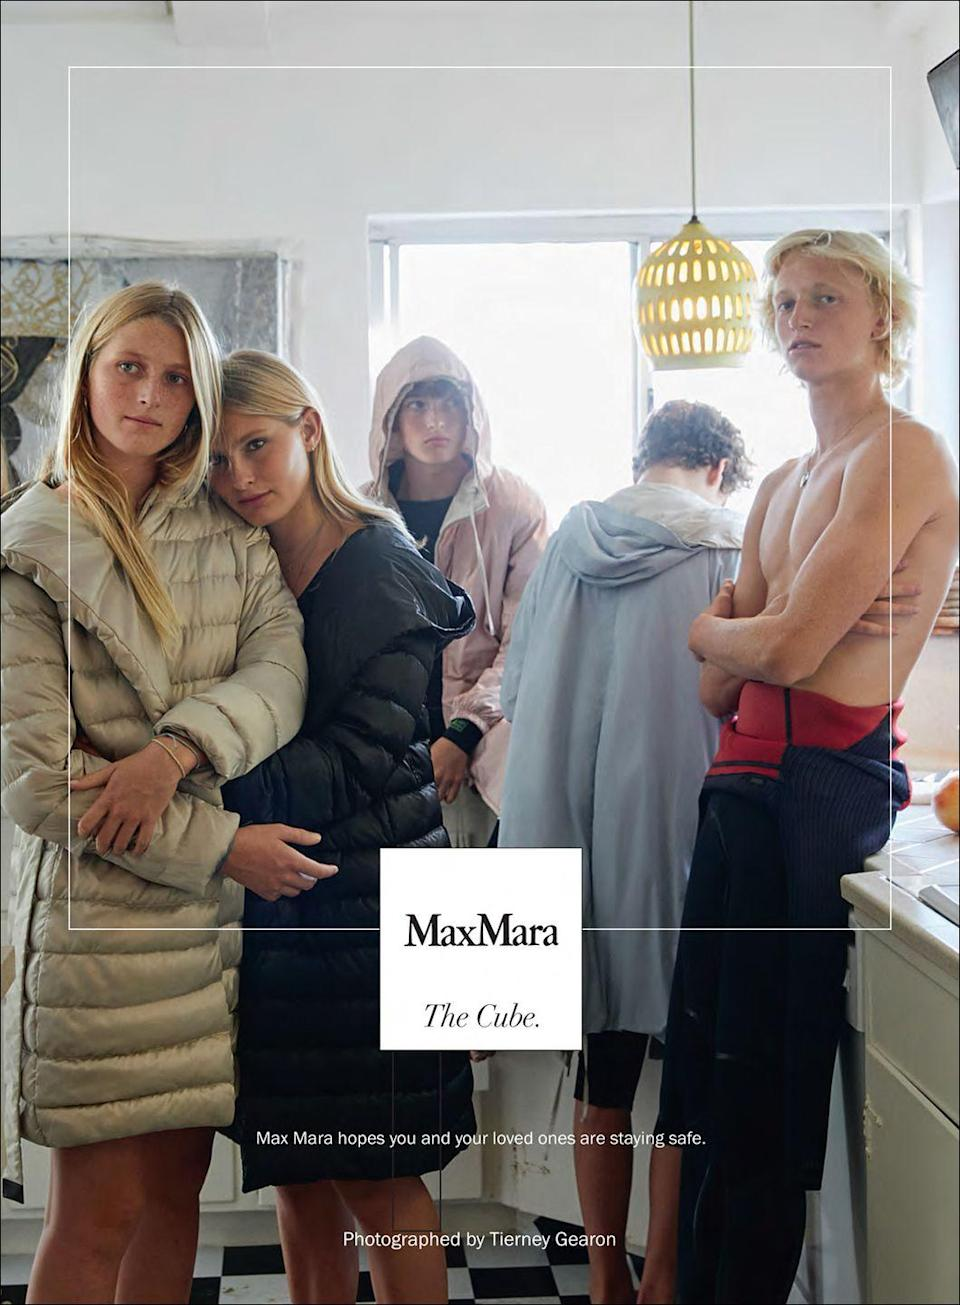 <p>Max Mara hopes you and your loved ones are staying safe.</p>